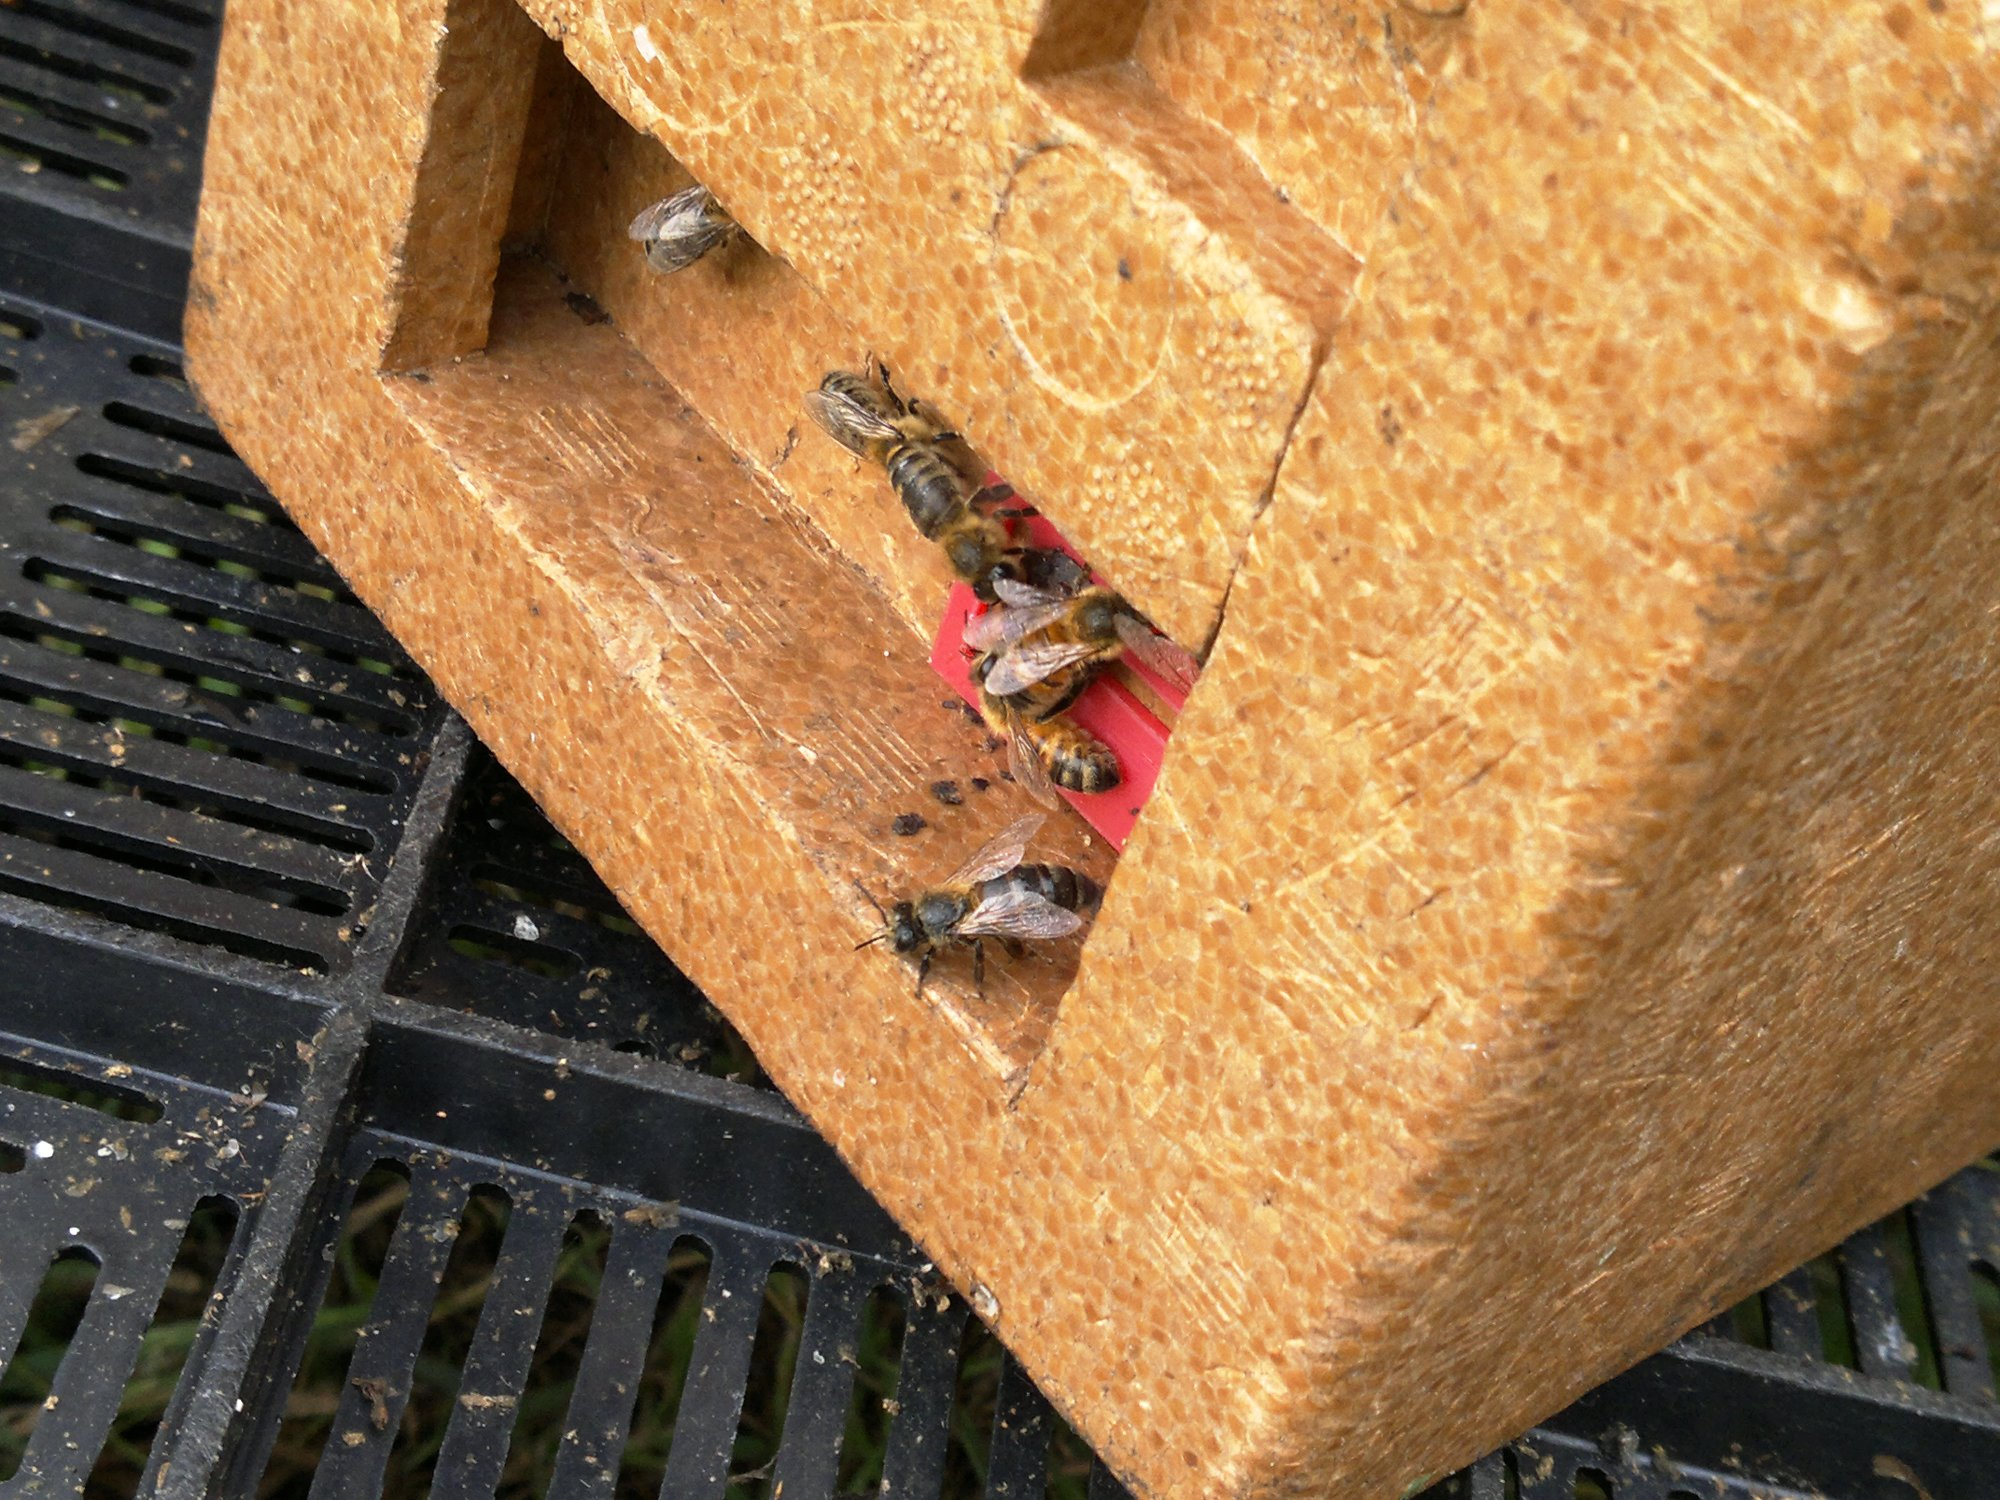 Bees emerging to explore their temporary home for the next few weeks